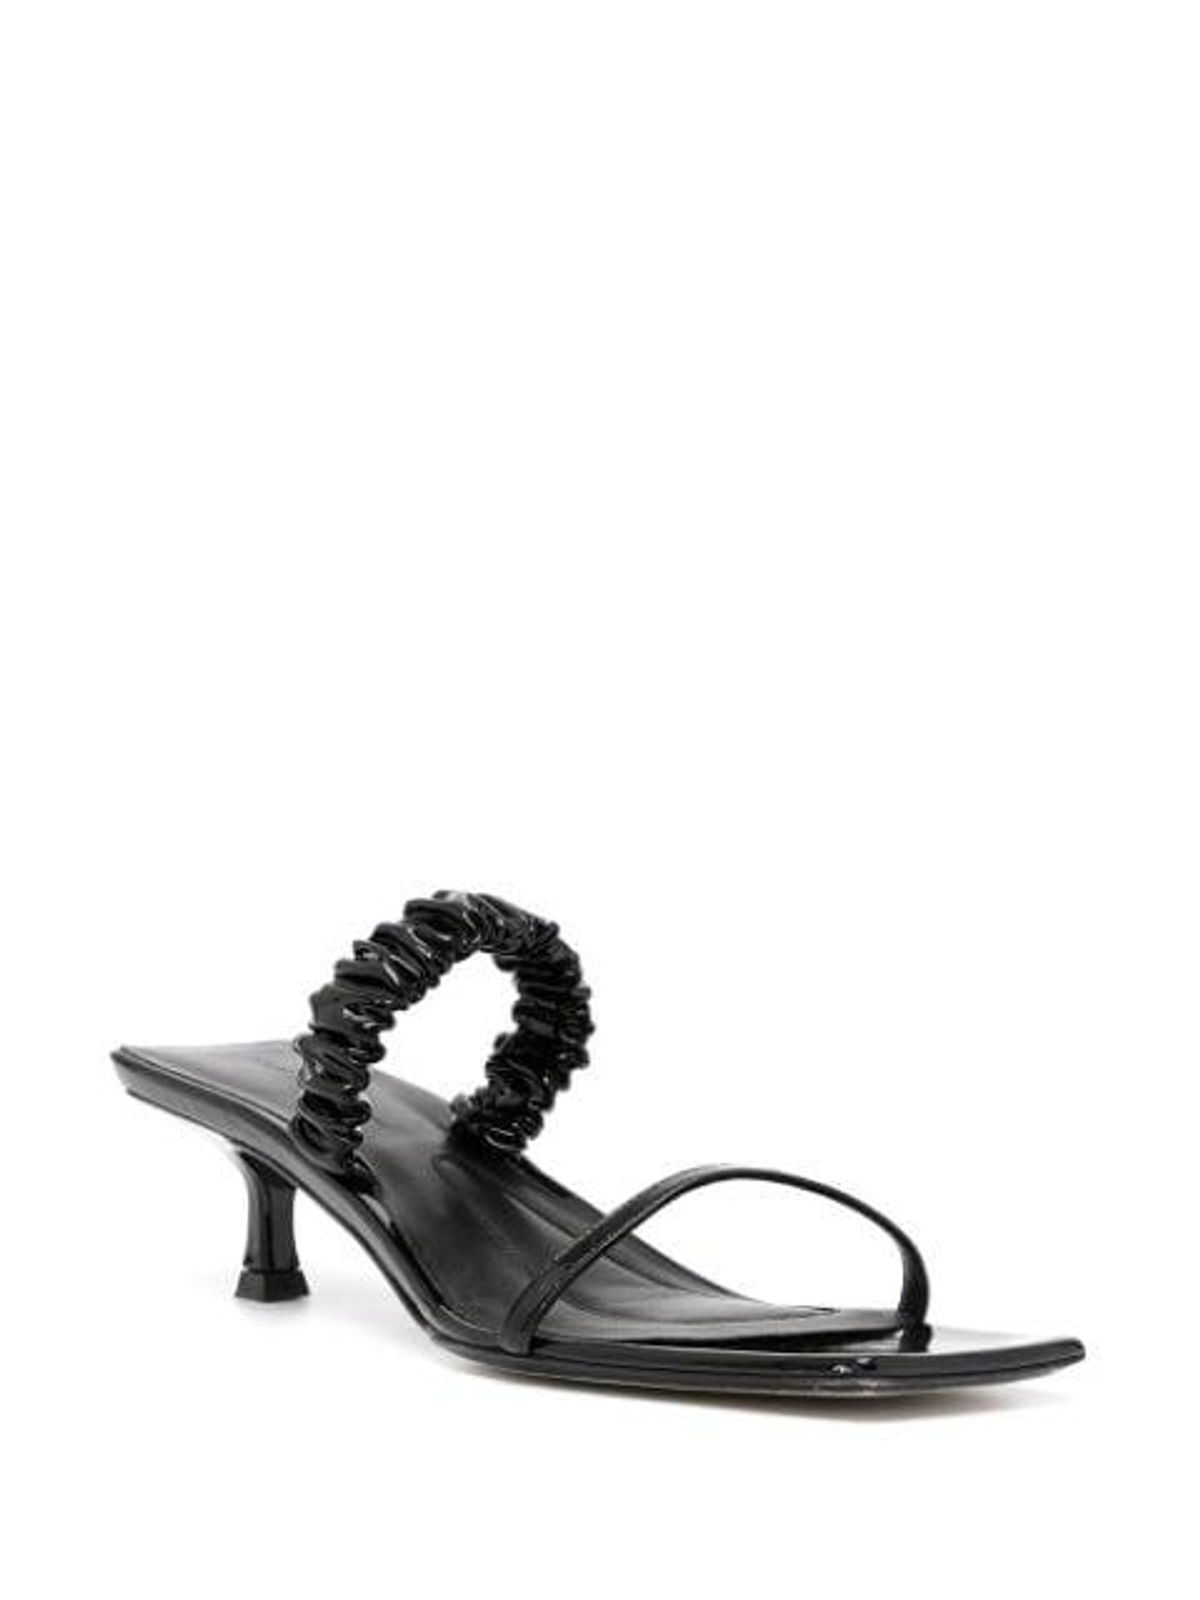 Ruched Square Toe Sandals